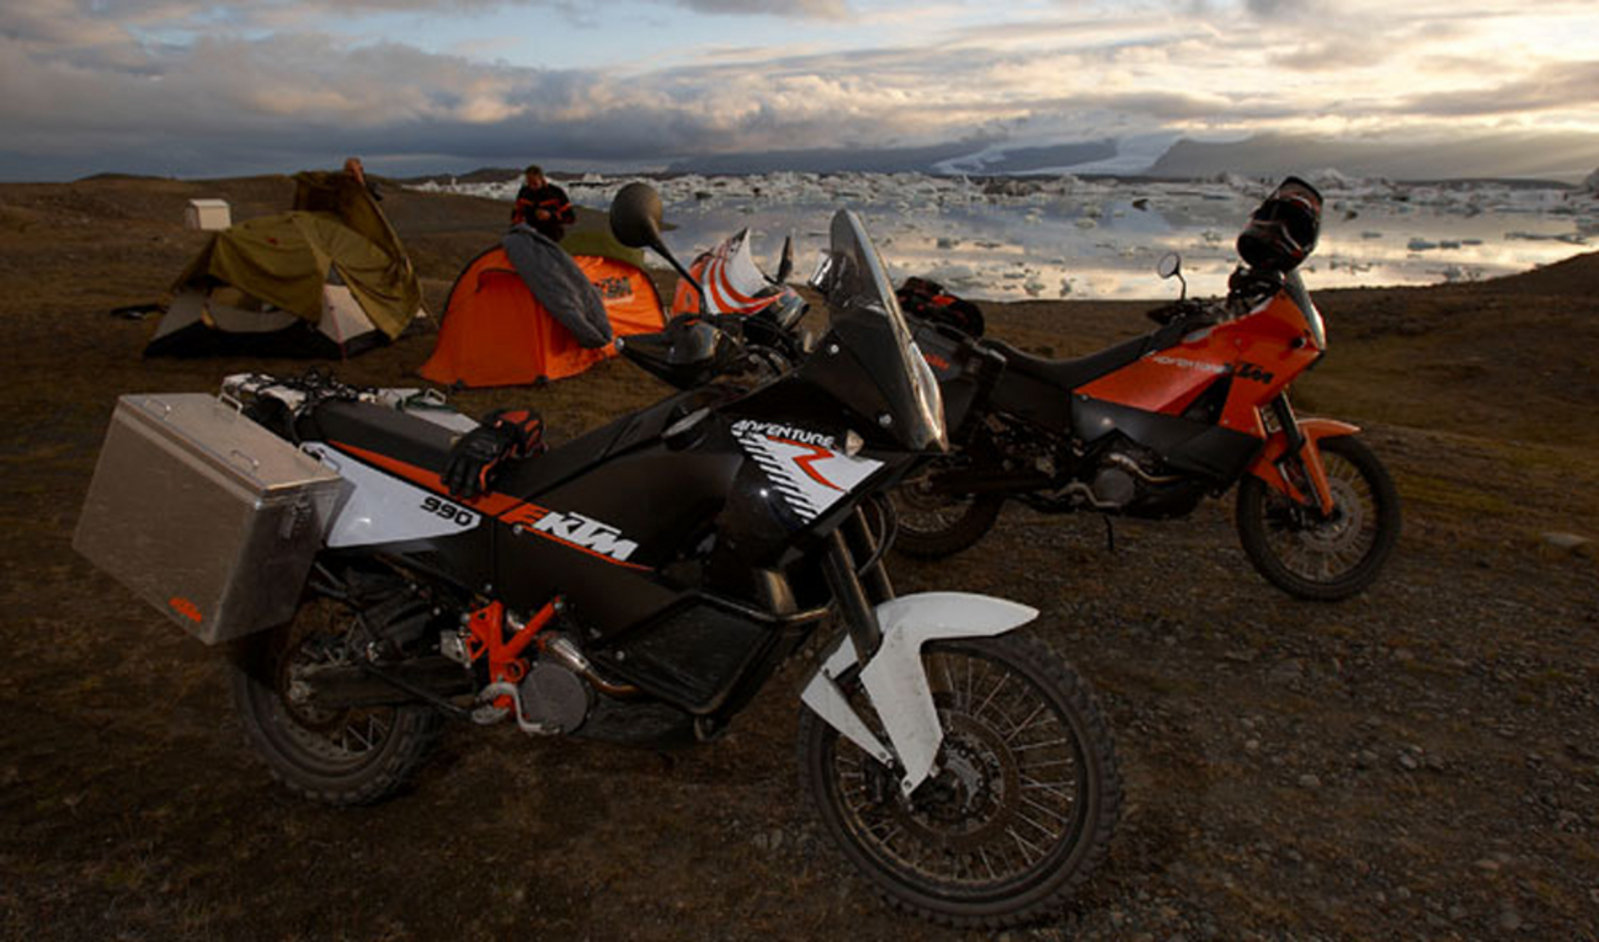 Premise 75 Vs I Maxx Pro: 2009 KTM 990 Adventure R Review